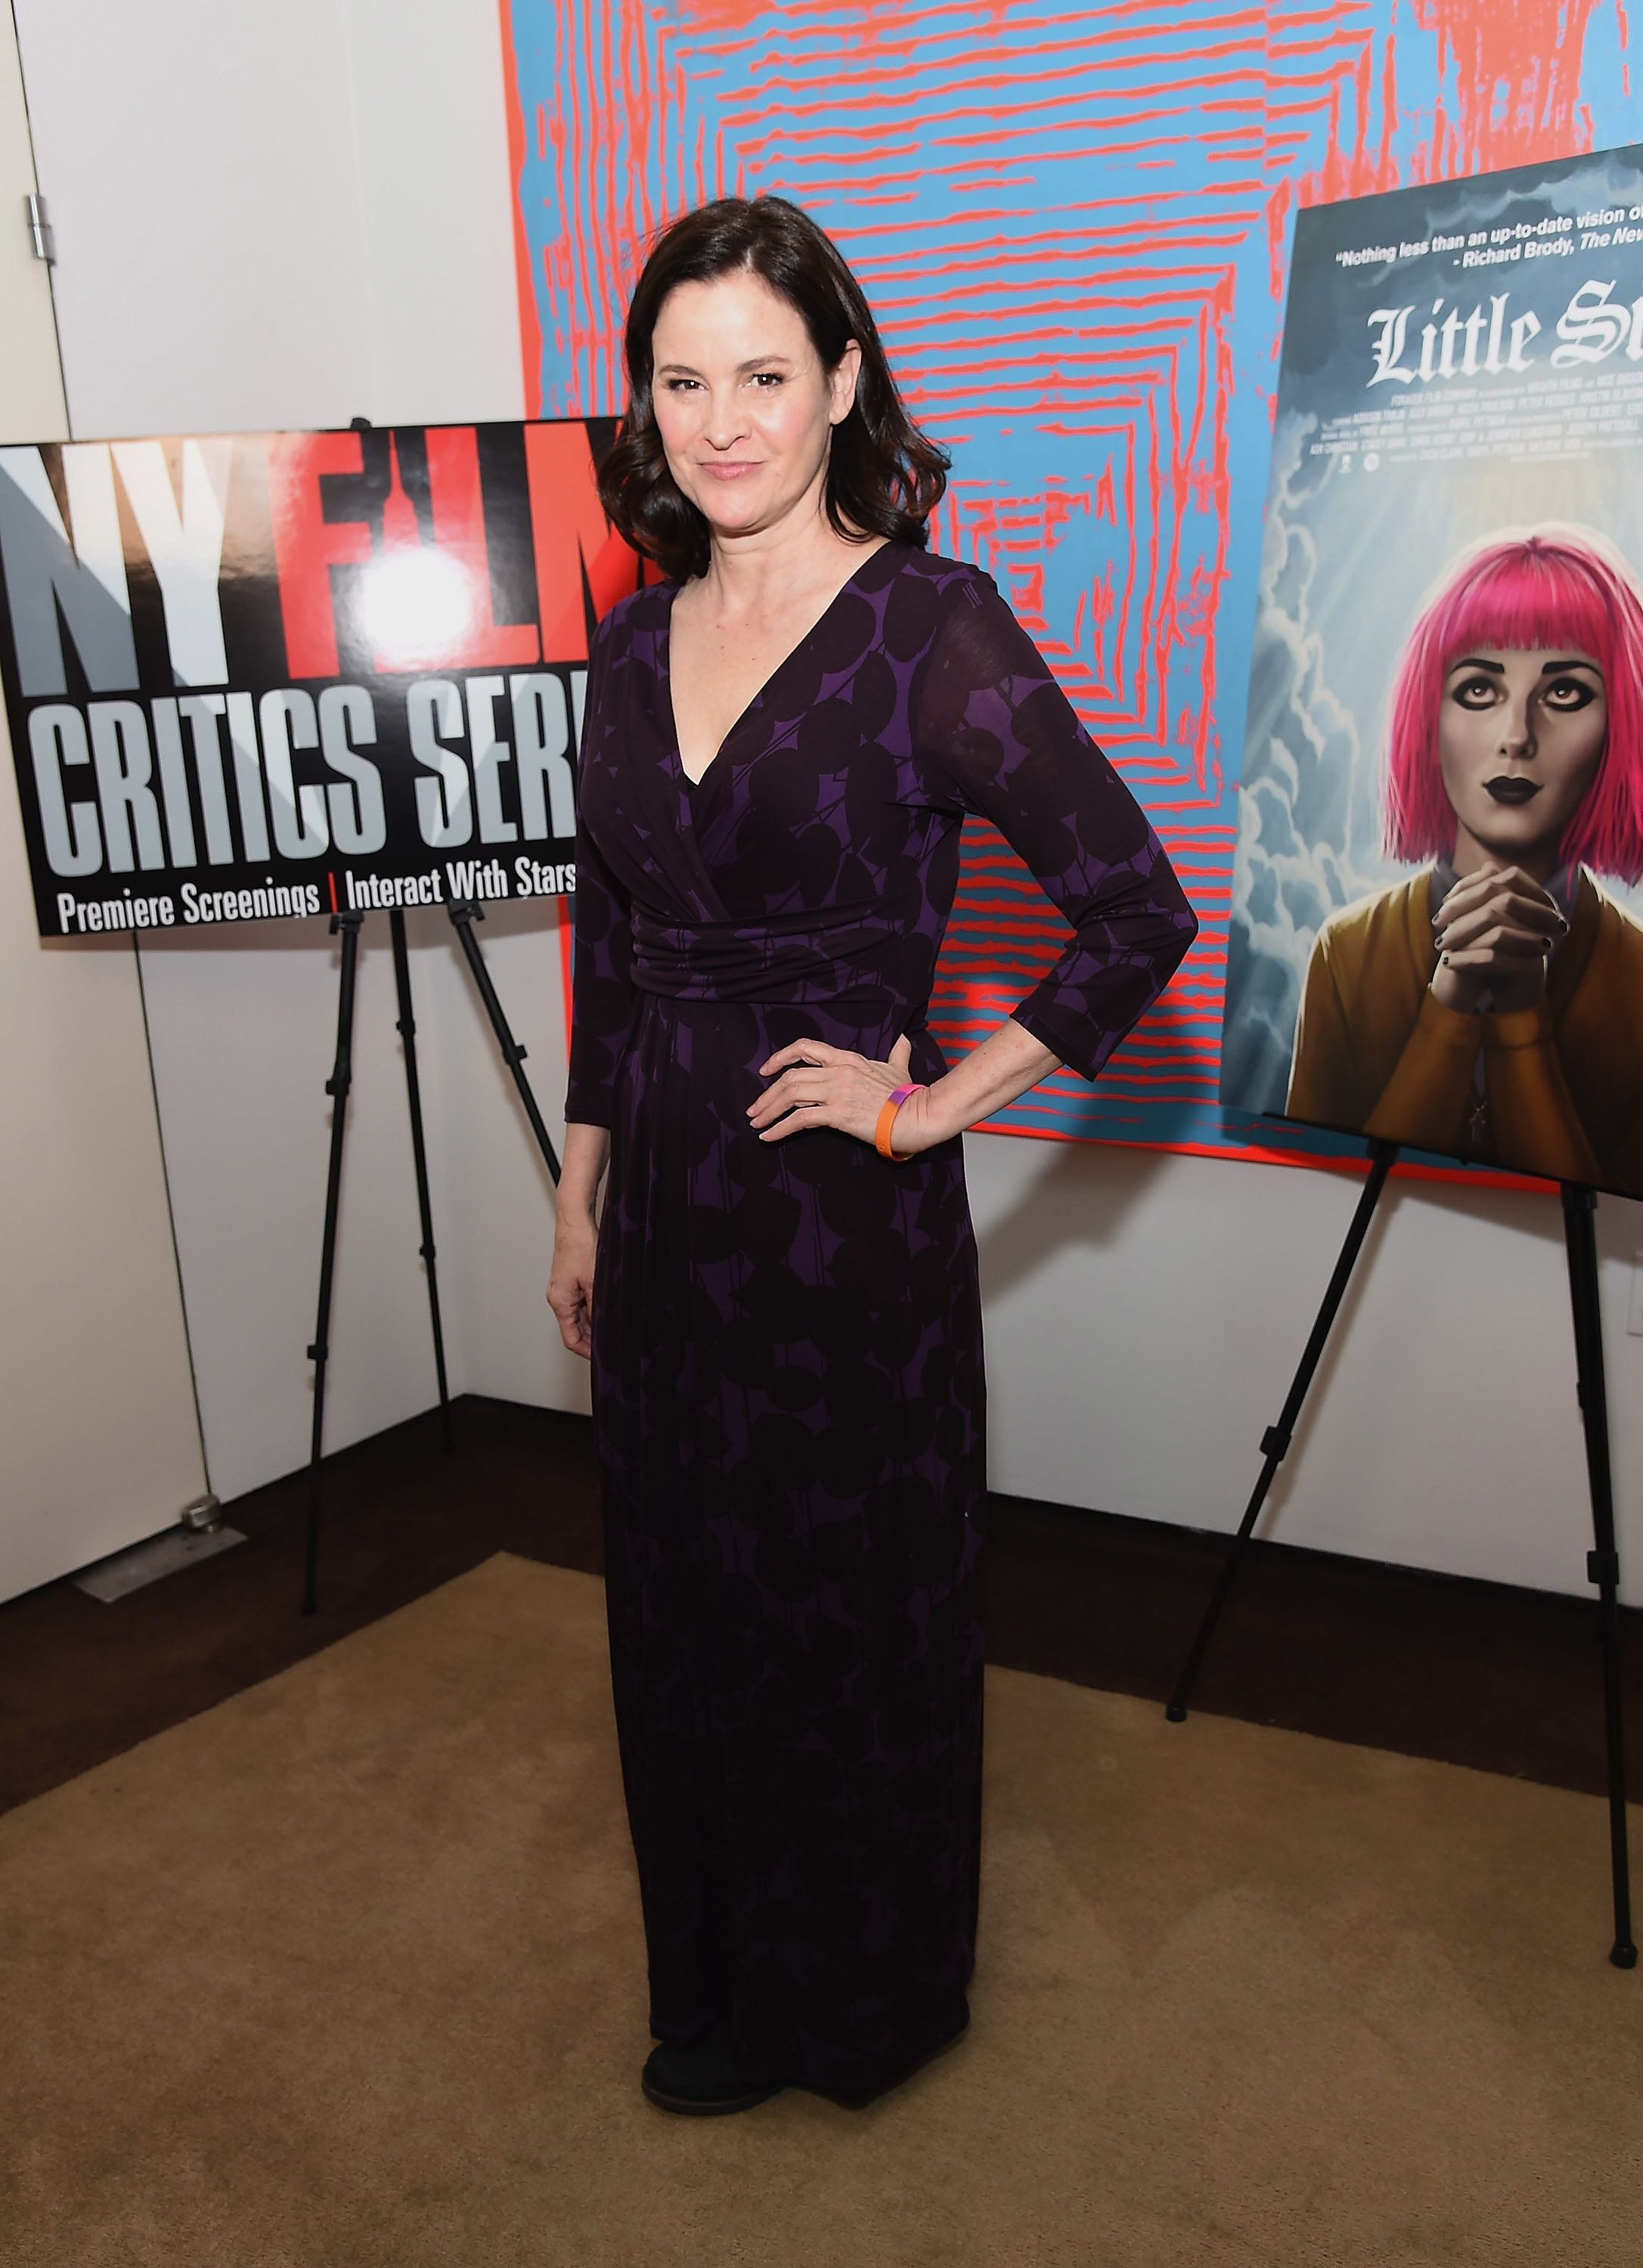 NEW YORK, NY - OCTOBER 05:  Actress Ally Sheedy attends the New York Film Critics series 'Little Sisters' Q&A at The Core Club on October 5, 2016 in New York City.  (Photo by Gary Gershoff/WireImage)